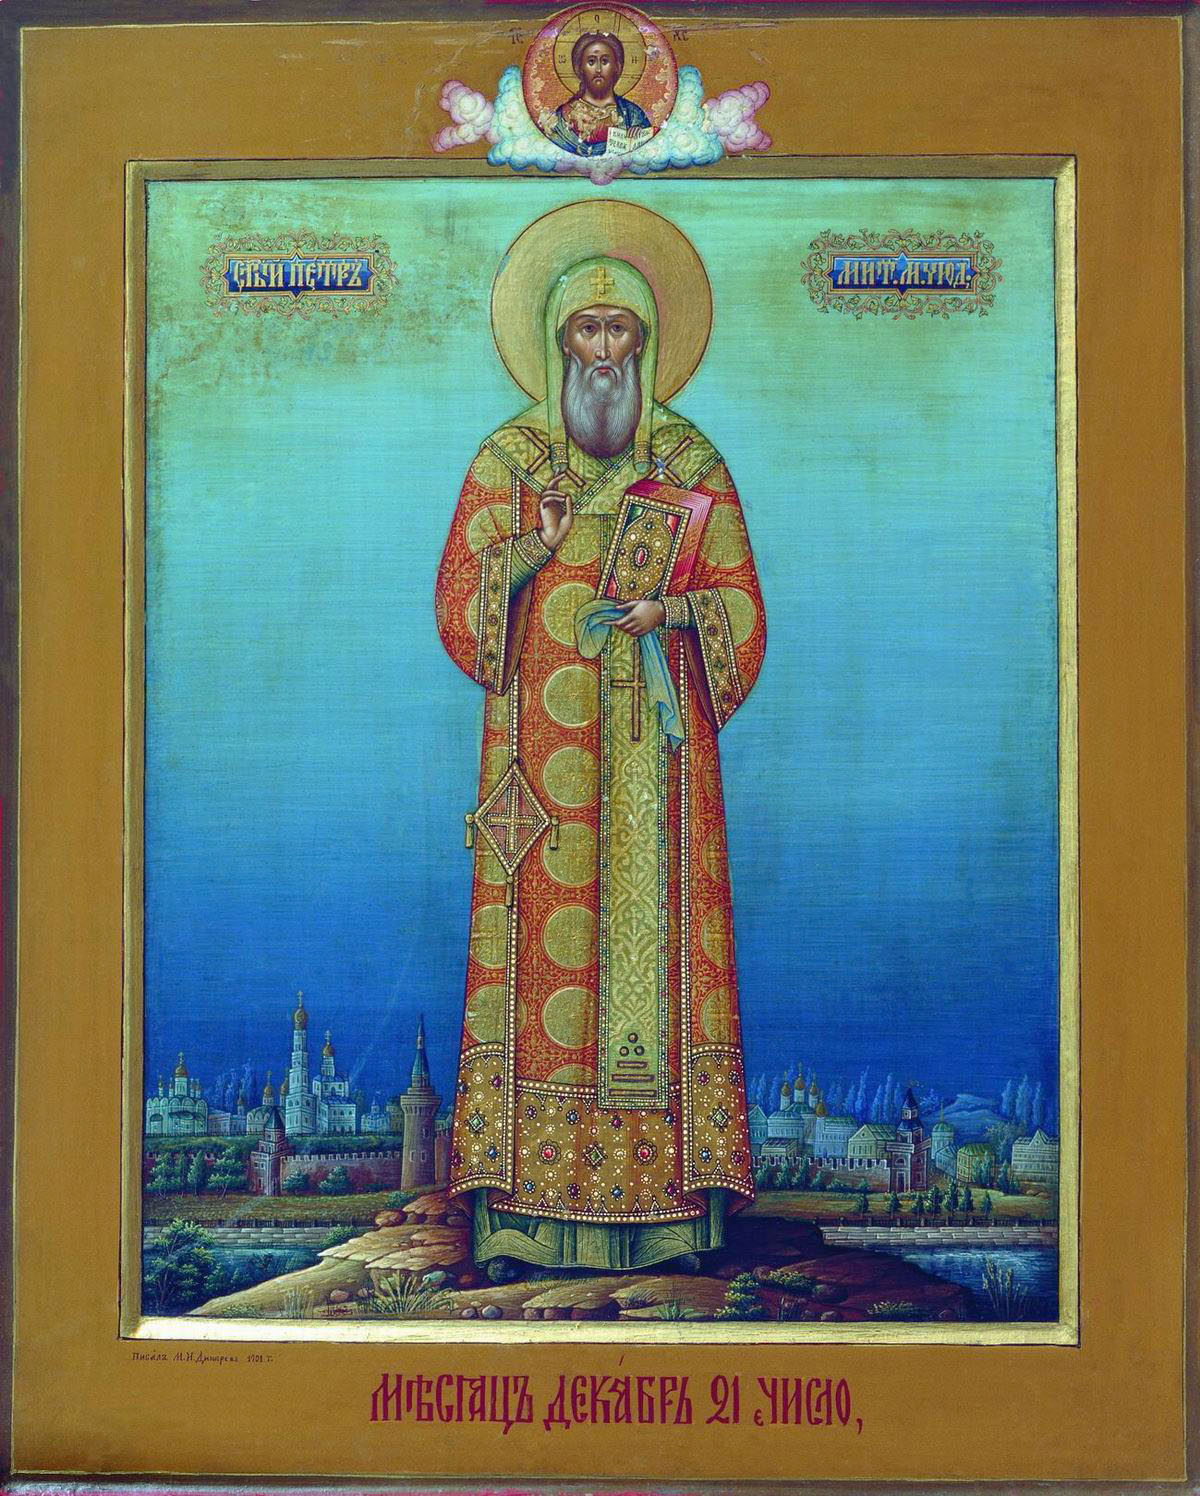 St. Peter Metropolitan Moscow the Wonderworker,  Mikhail Dikaryov, 1901. An exquisite example of the one of the most renown representatives of the Mstera style working in Moscow at the turn of the 20th century.